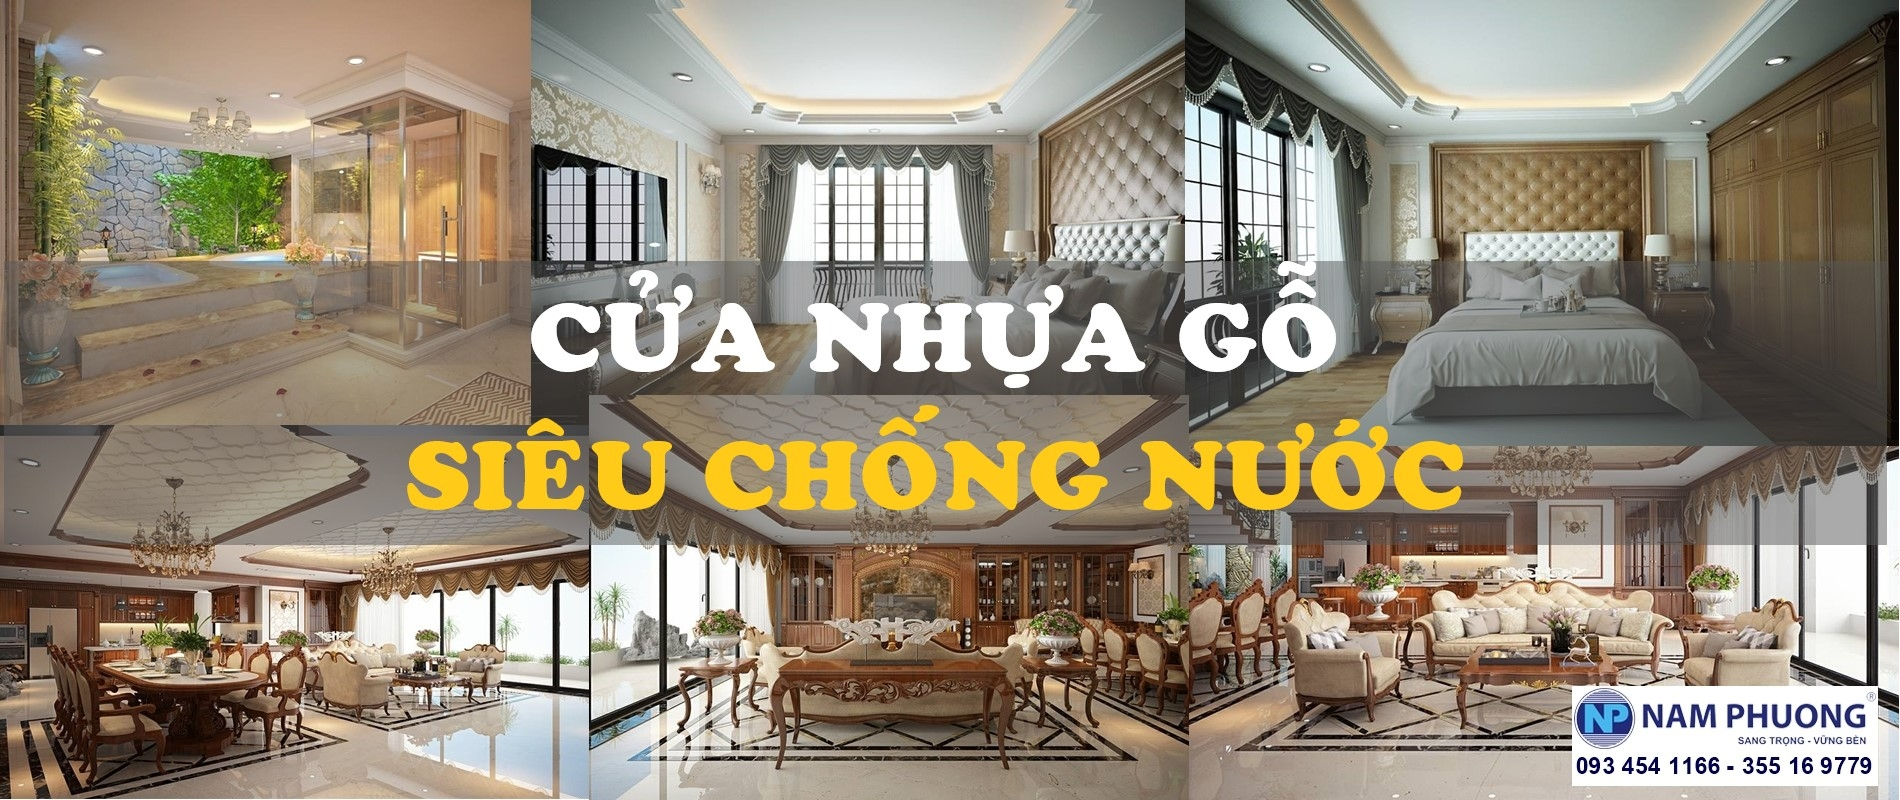 Nam Phương Window (@namphuongwindow) Cover Image